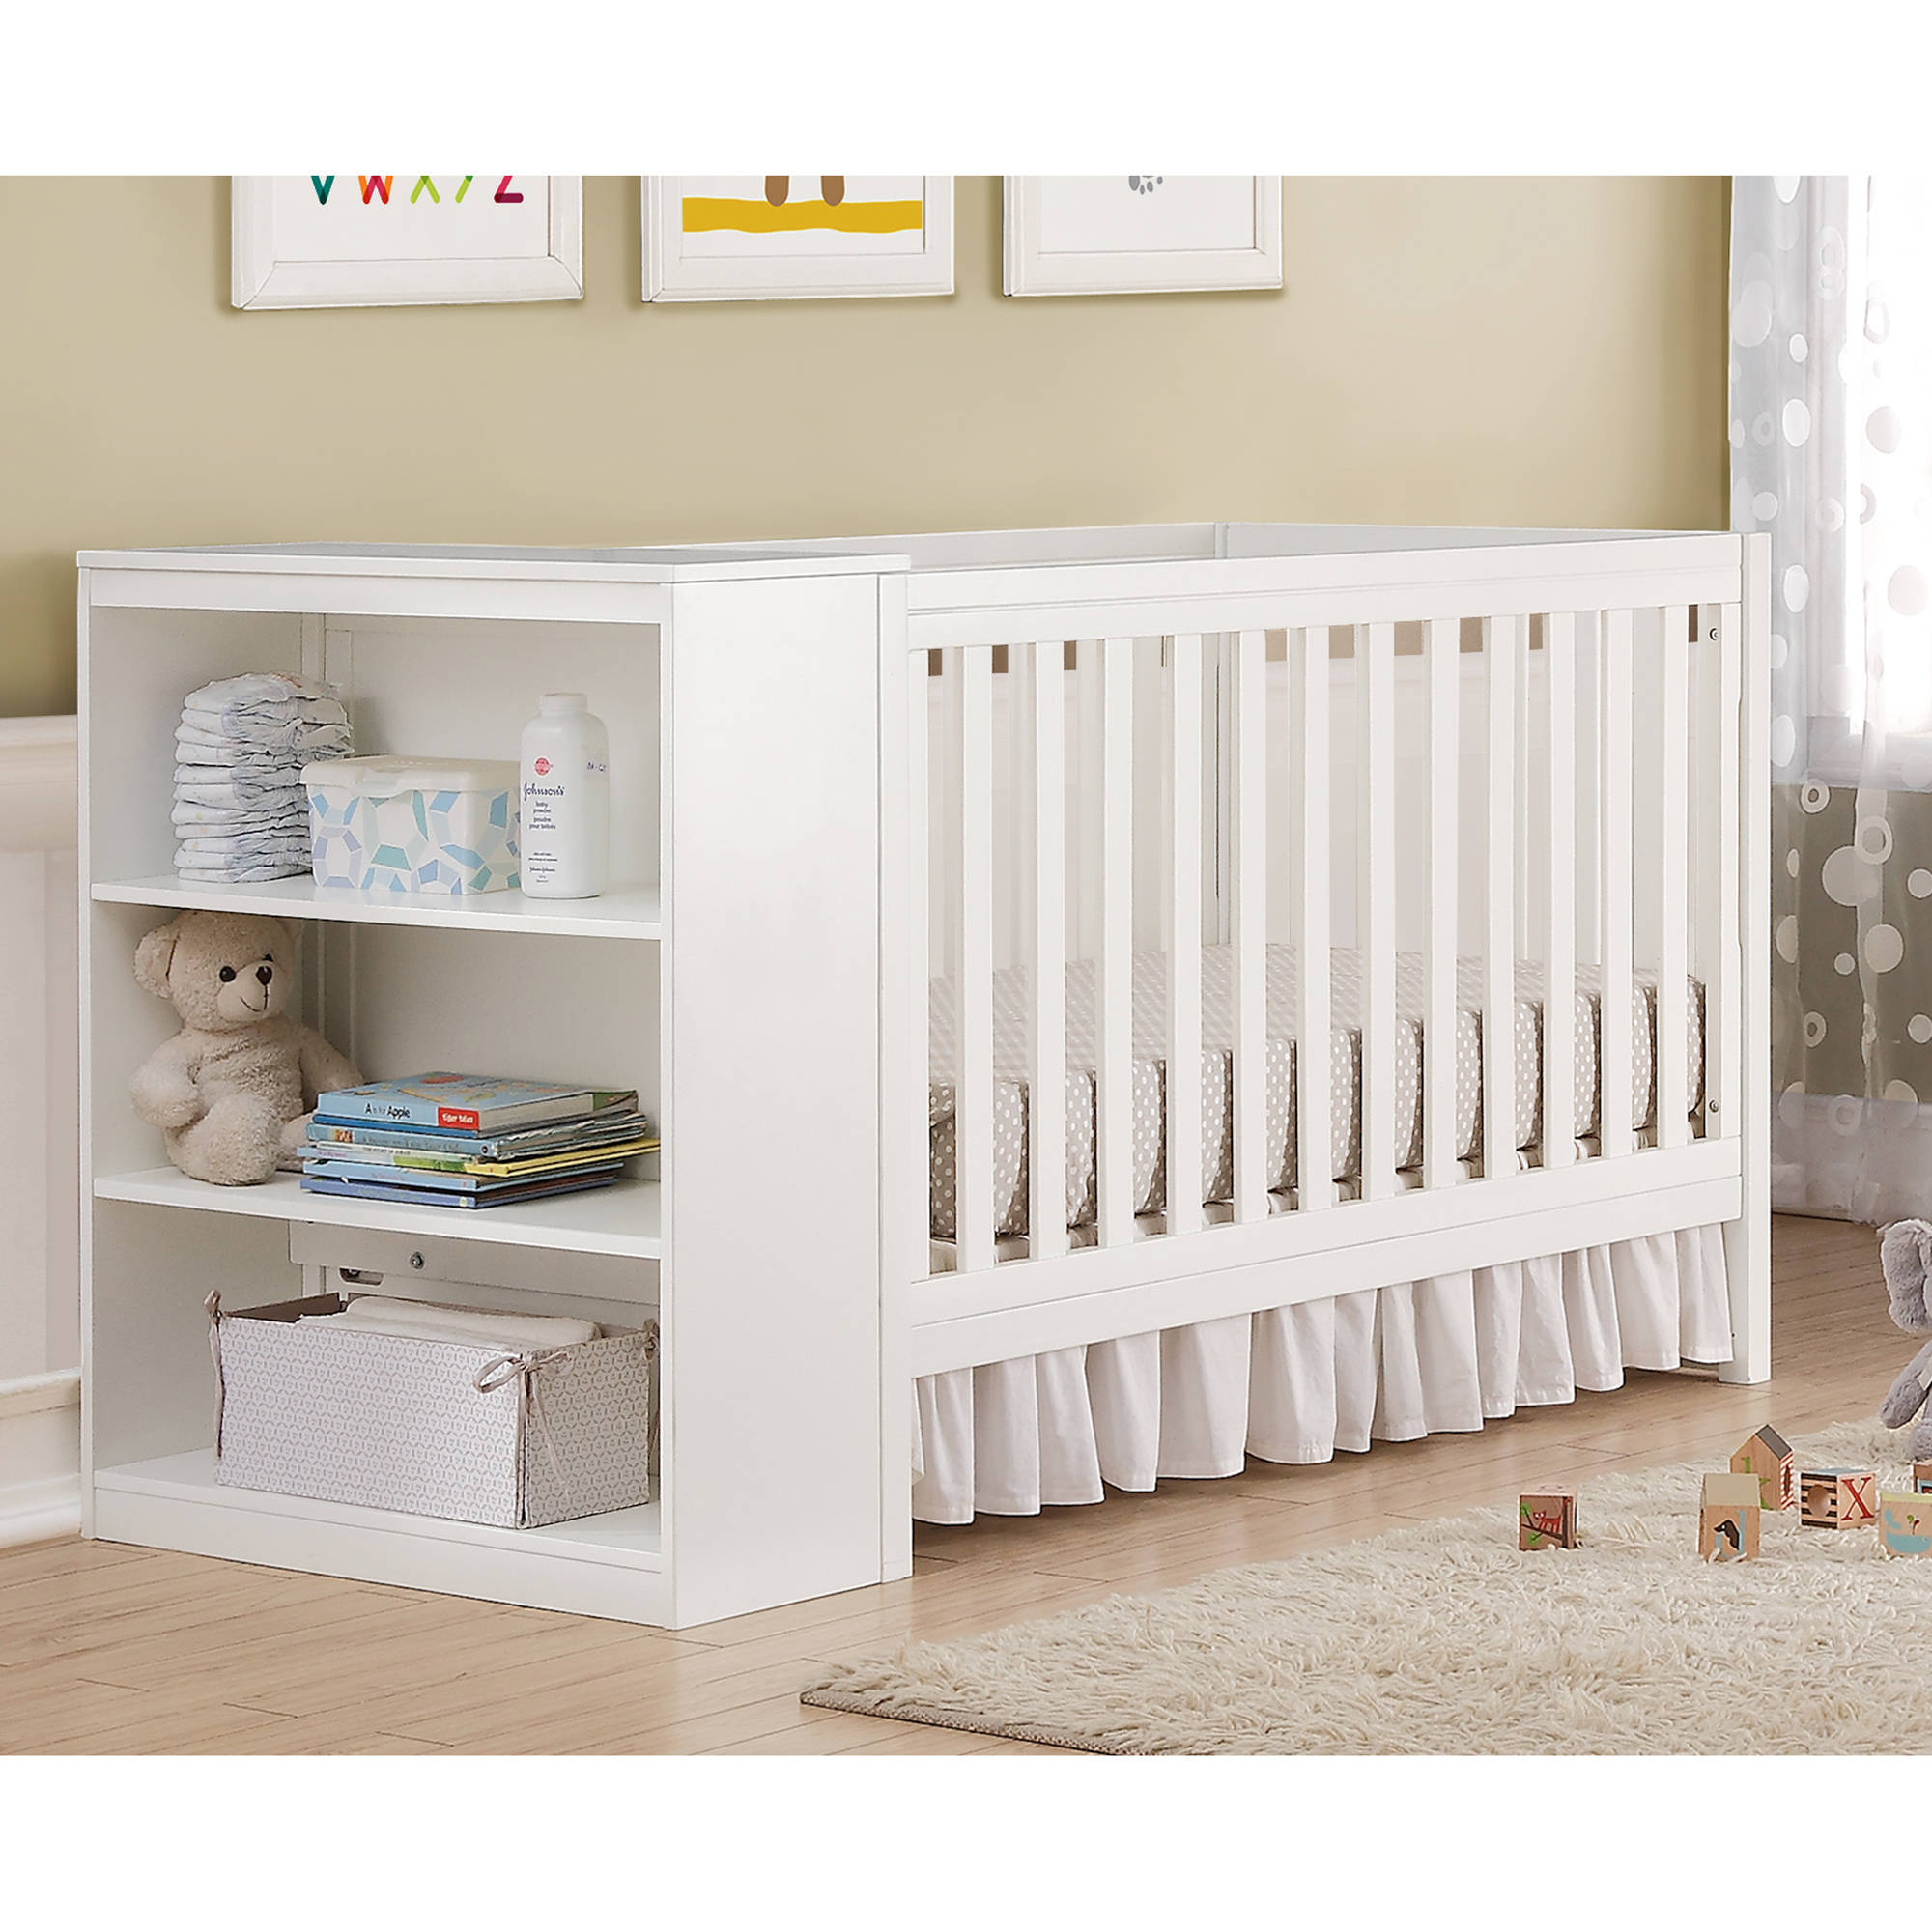 Baby Relax Ayla 2-in-1 Convertible Fixed-Side Crib with Storage, Multiple Colors